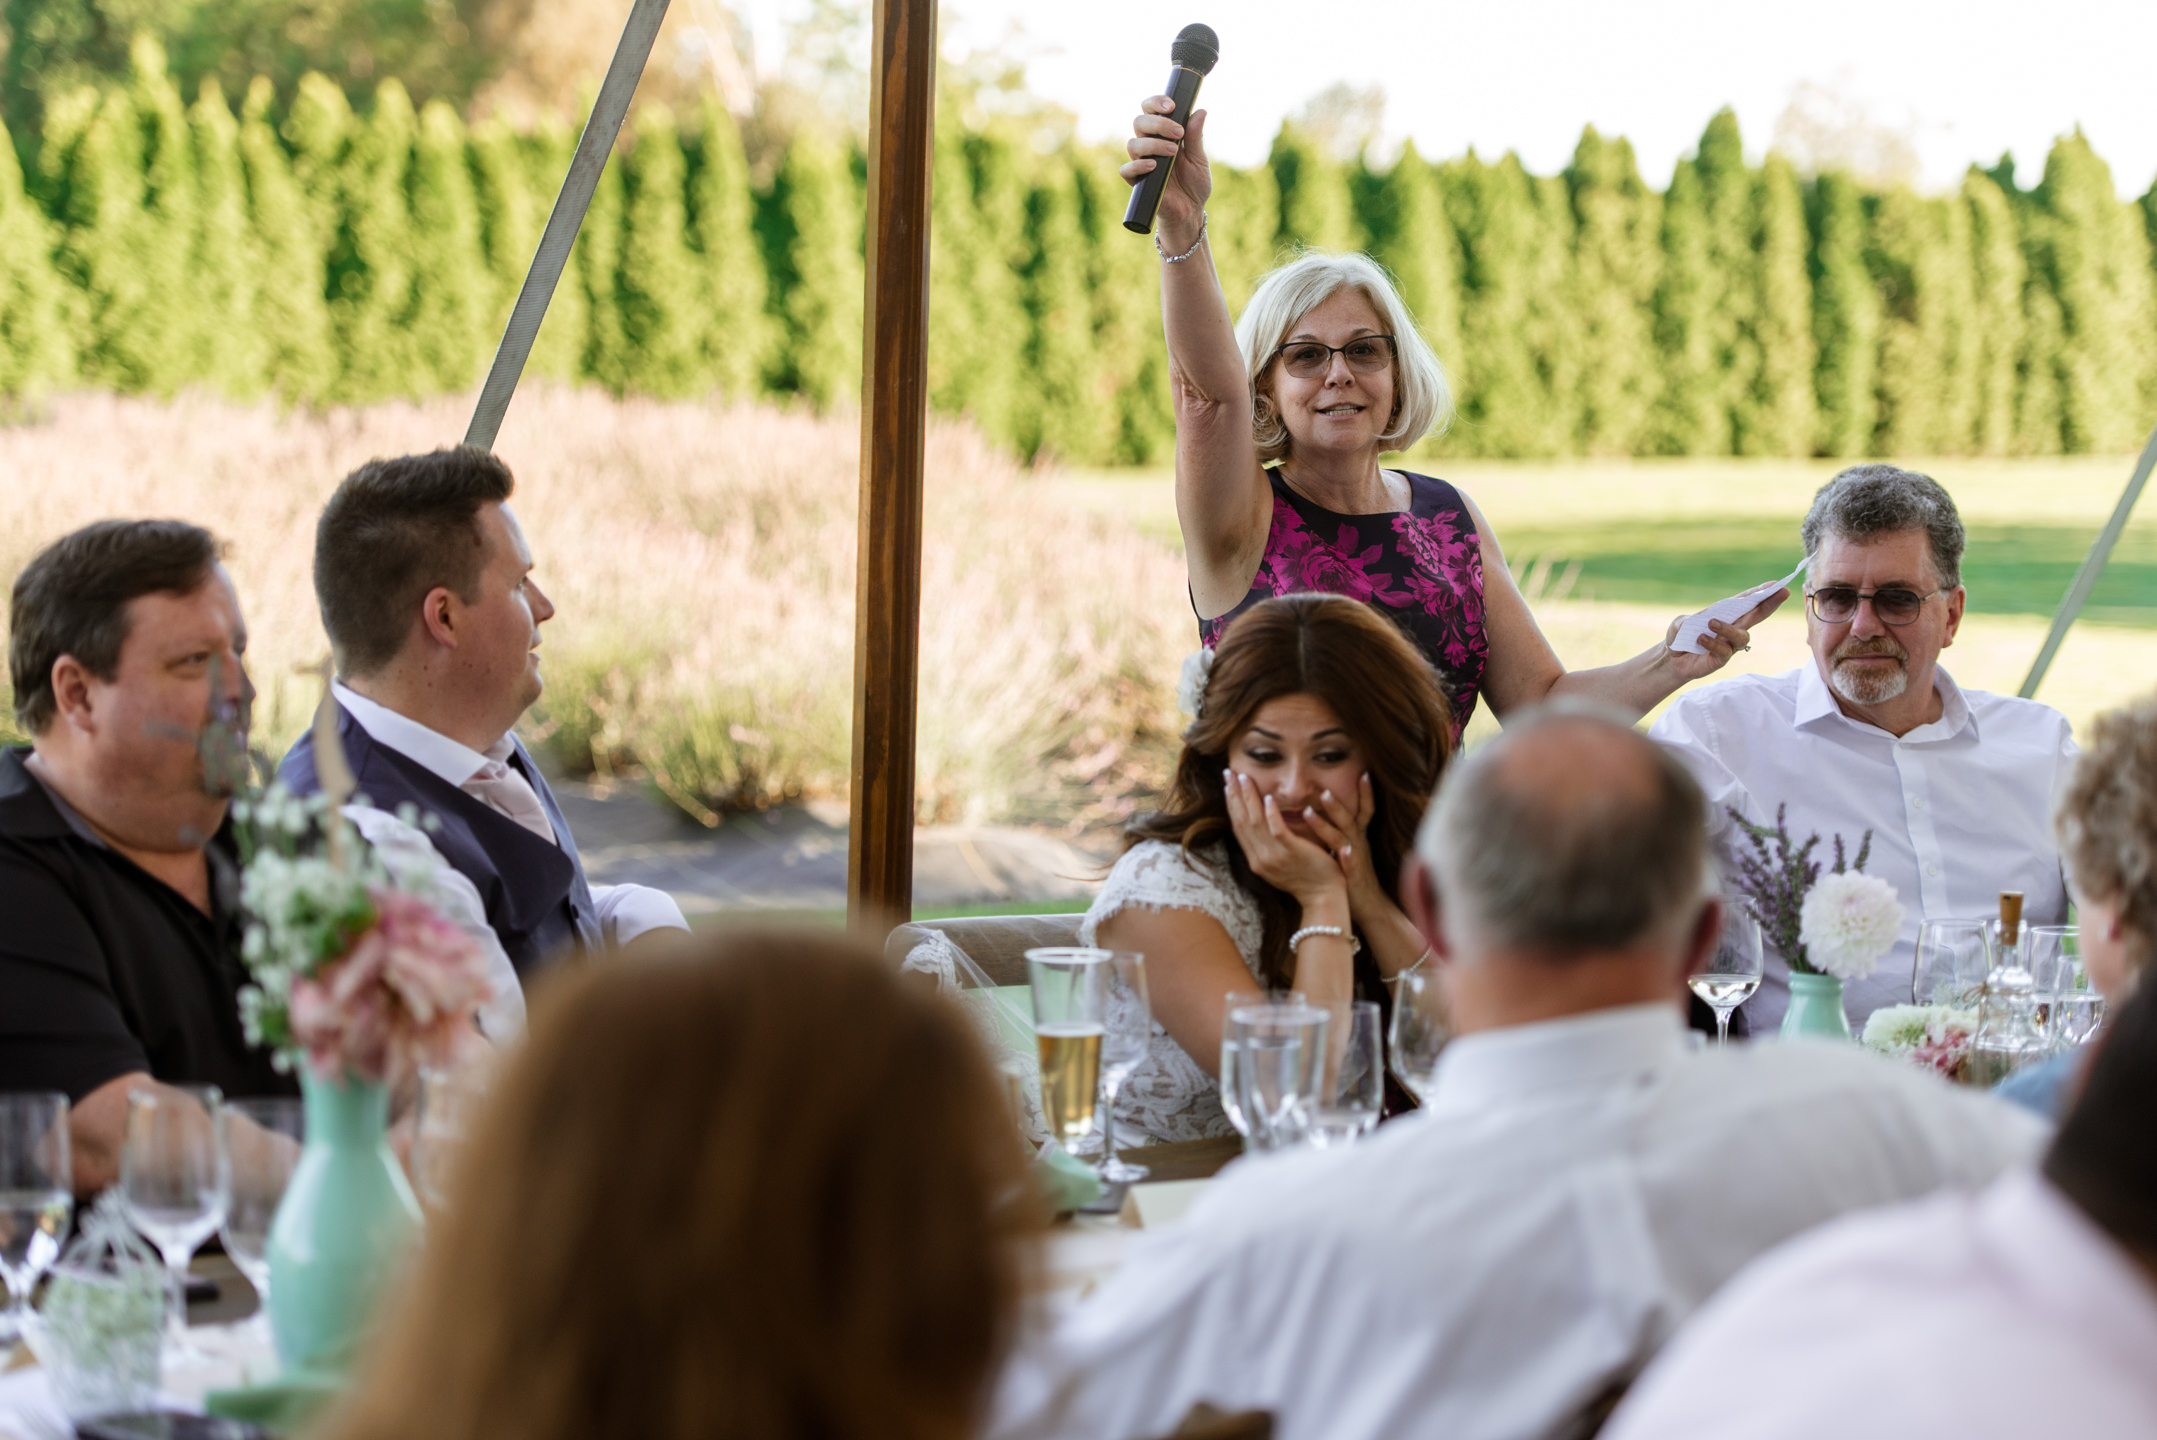 Excited Mother Wedding Toast at Woodinville Lavender